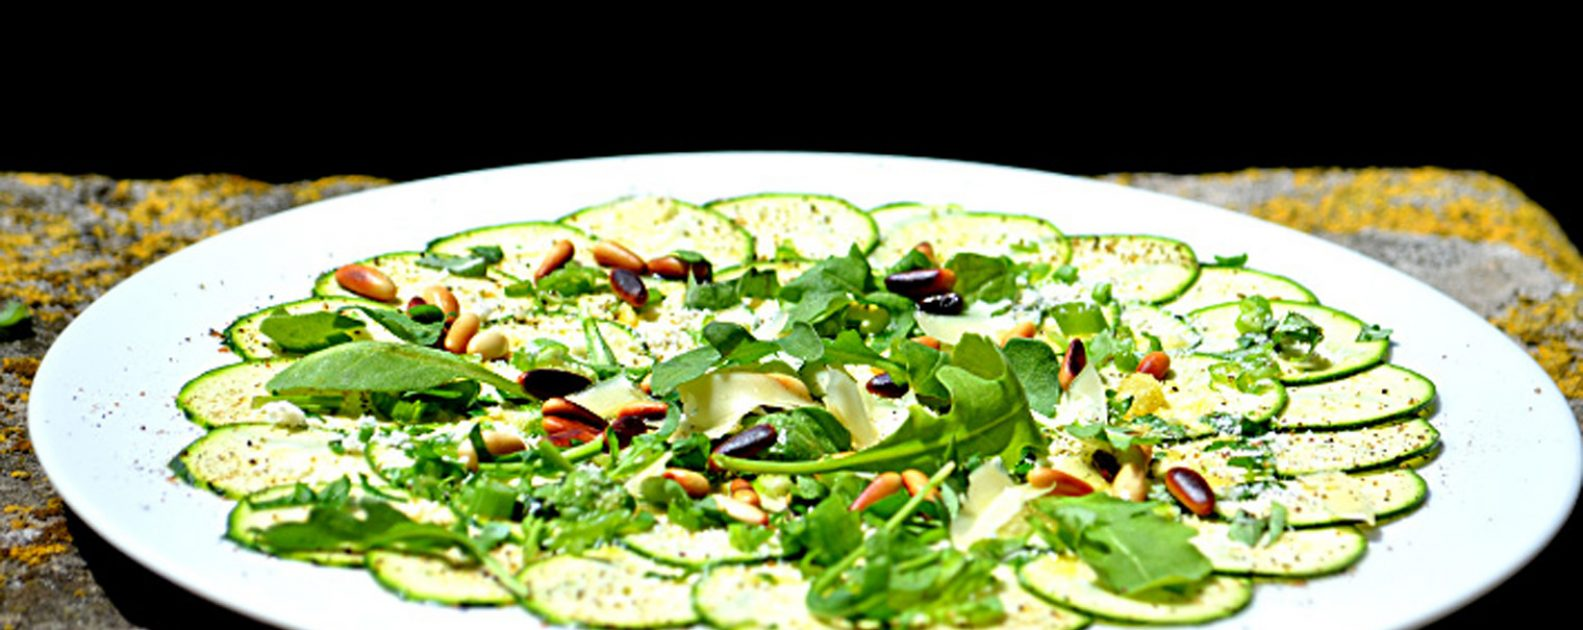 carpaccio courgettes 2